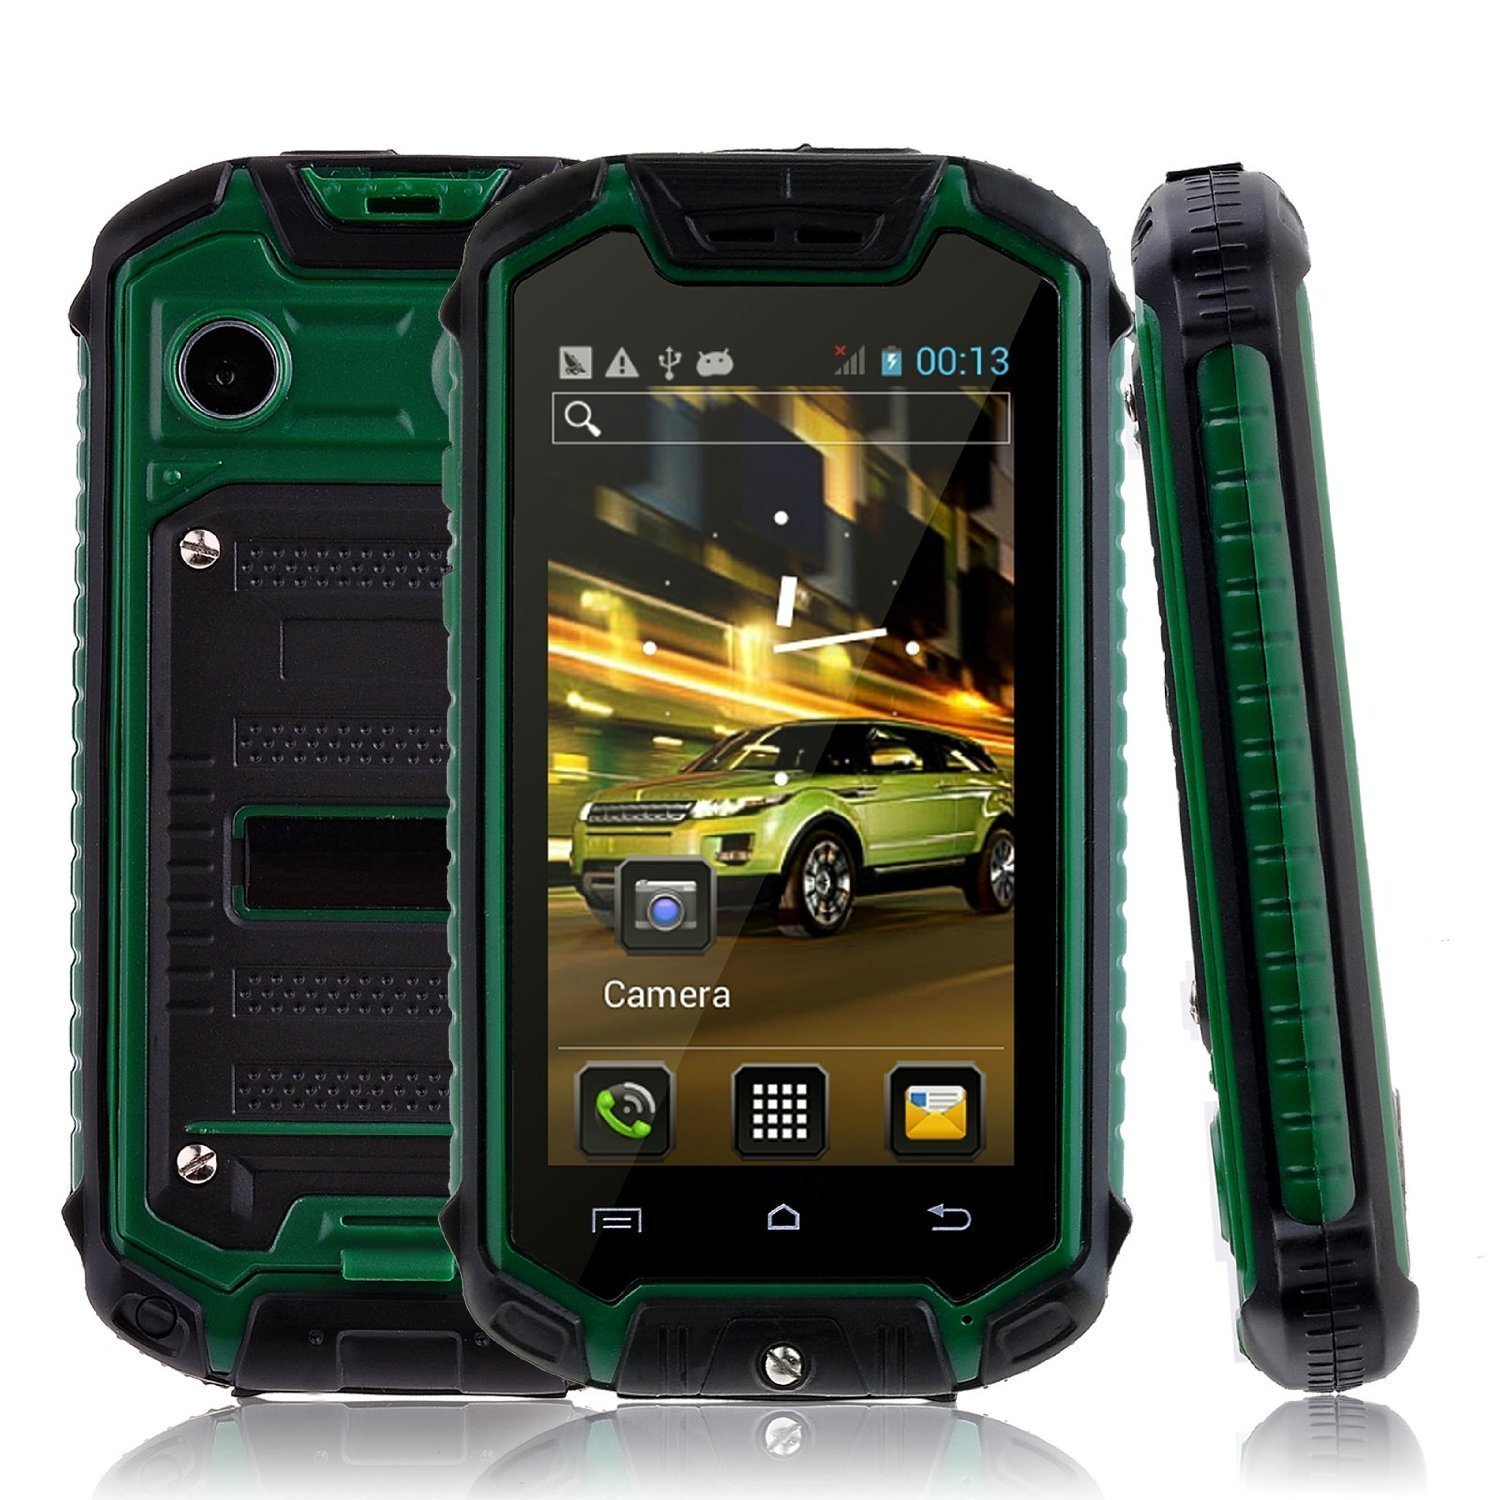 Sudroid 3G 2.45 Inches Z18 Android 4.4 Water and Dust-proof Smartphone Unlocked (Green)